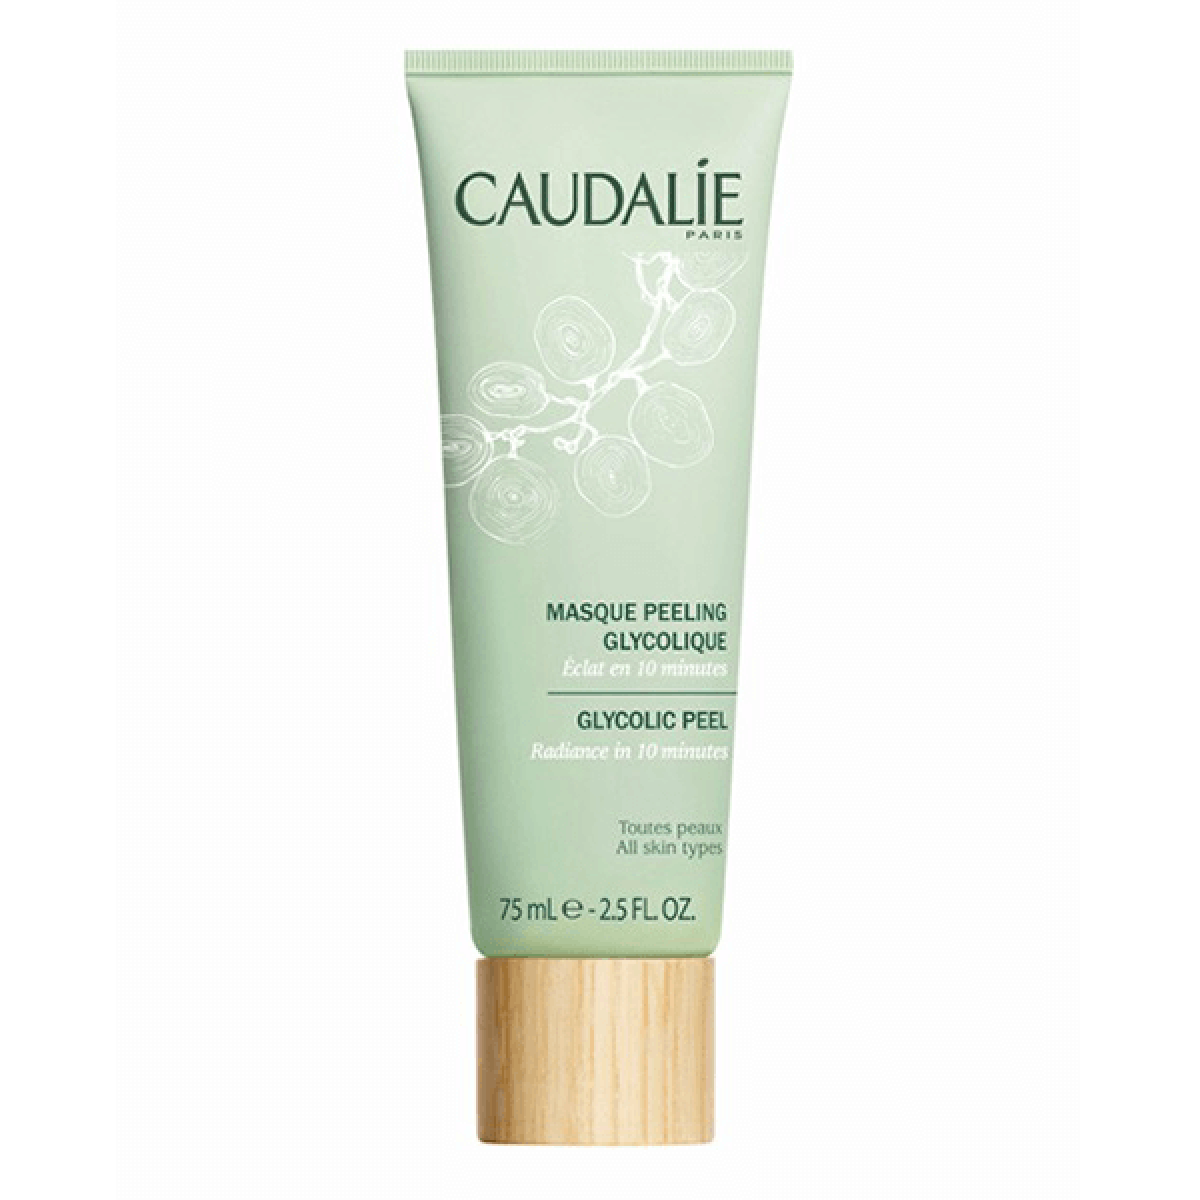 caudalie masque peeling glycolique 75ml parapharmacie pharmarket. Black Bedroom Furniture Sets. Home Design Ideas